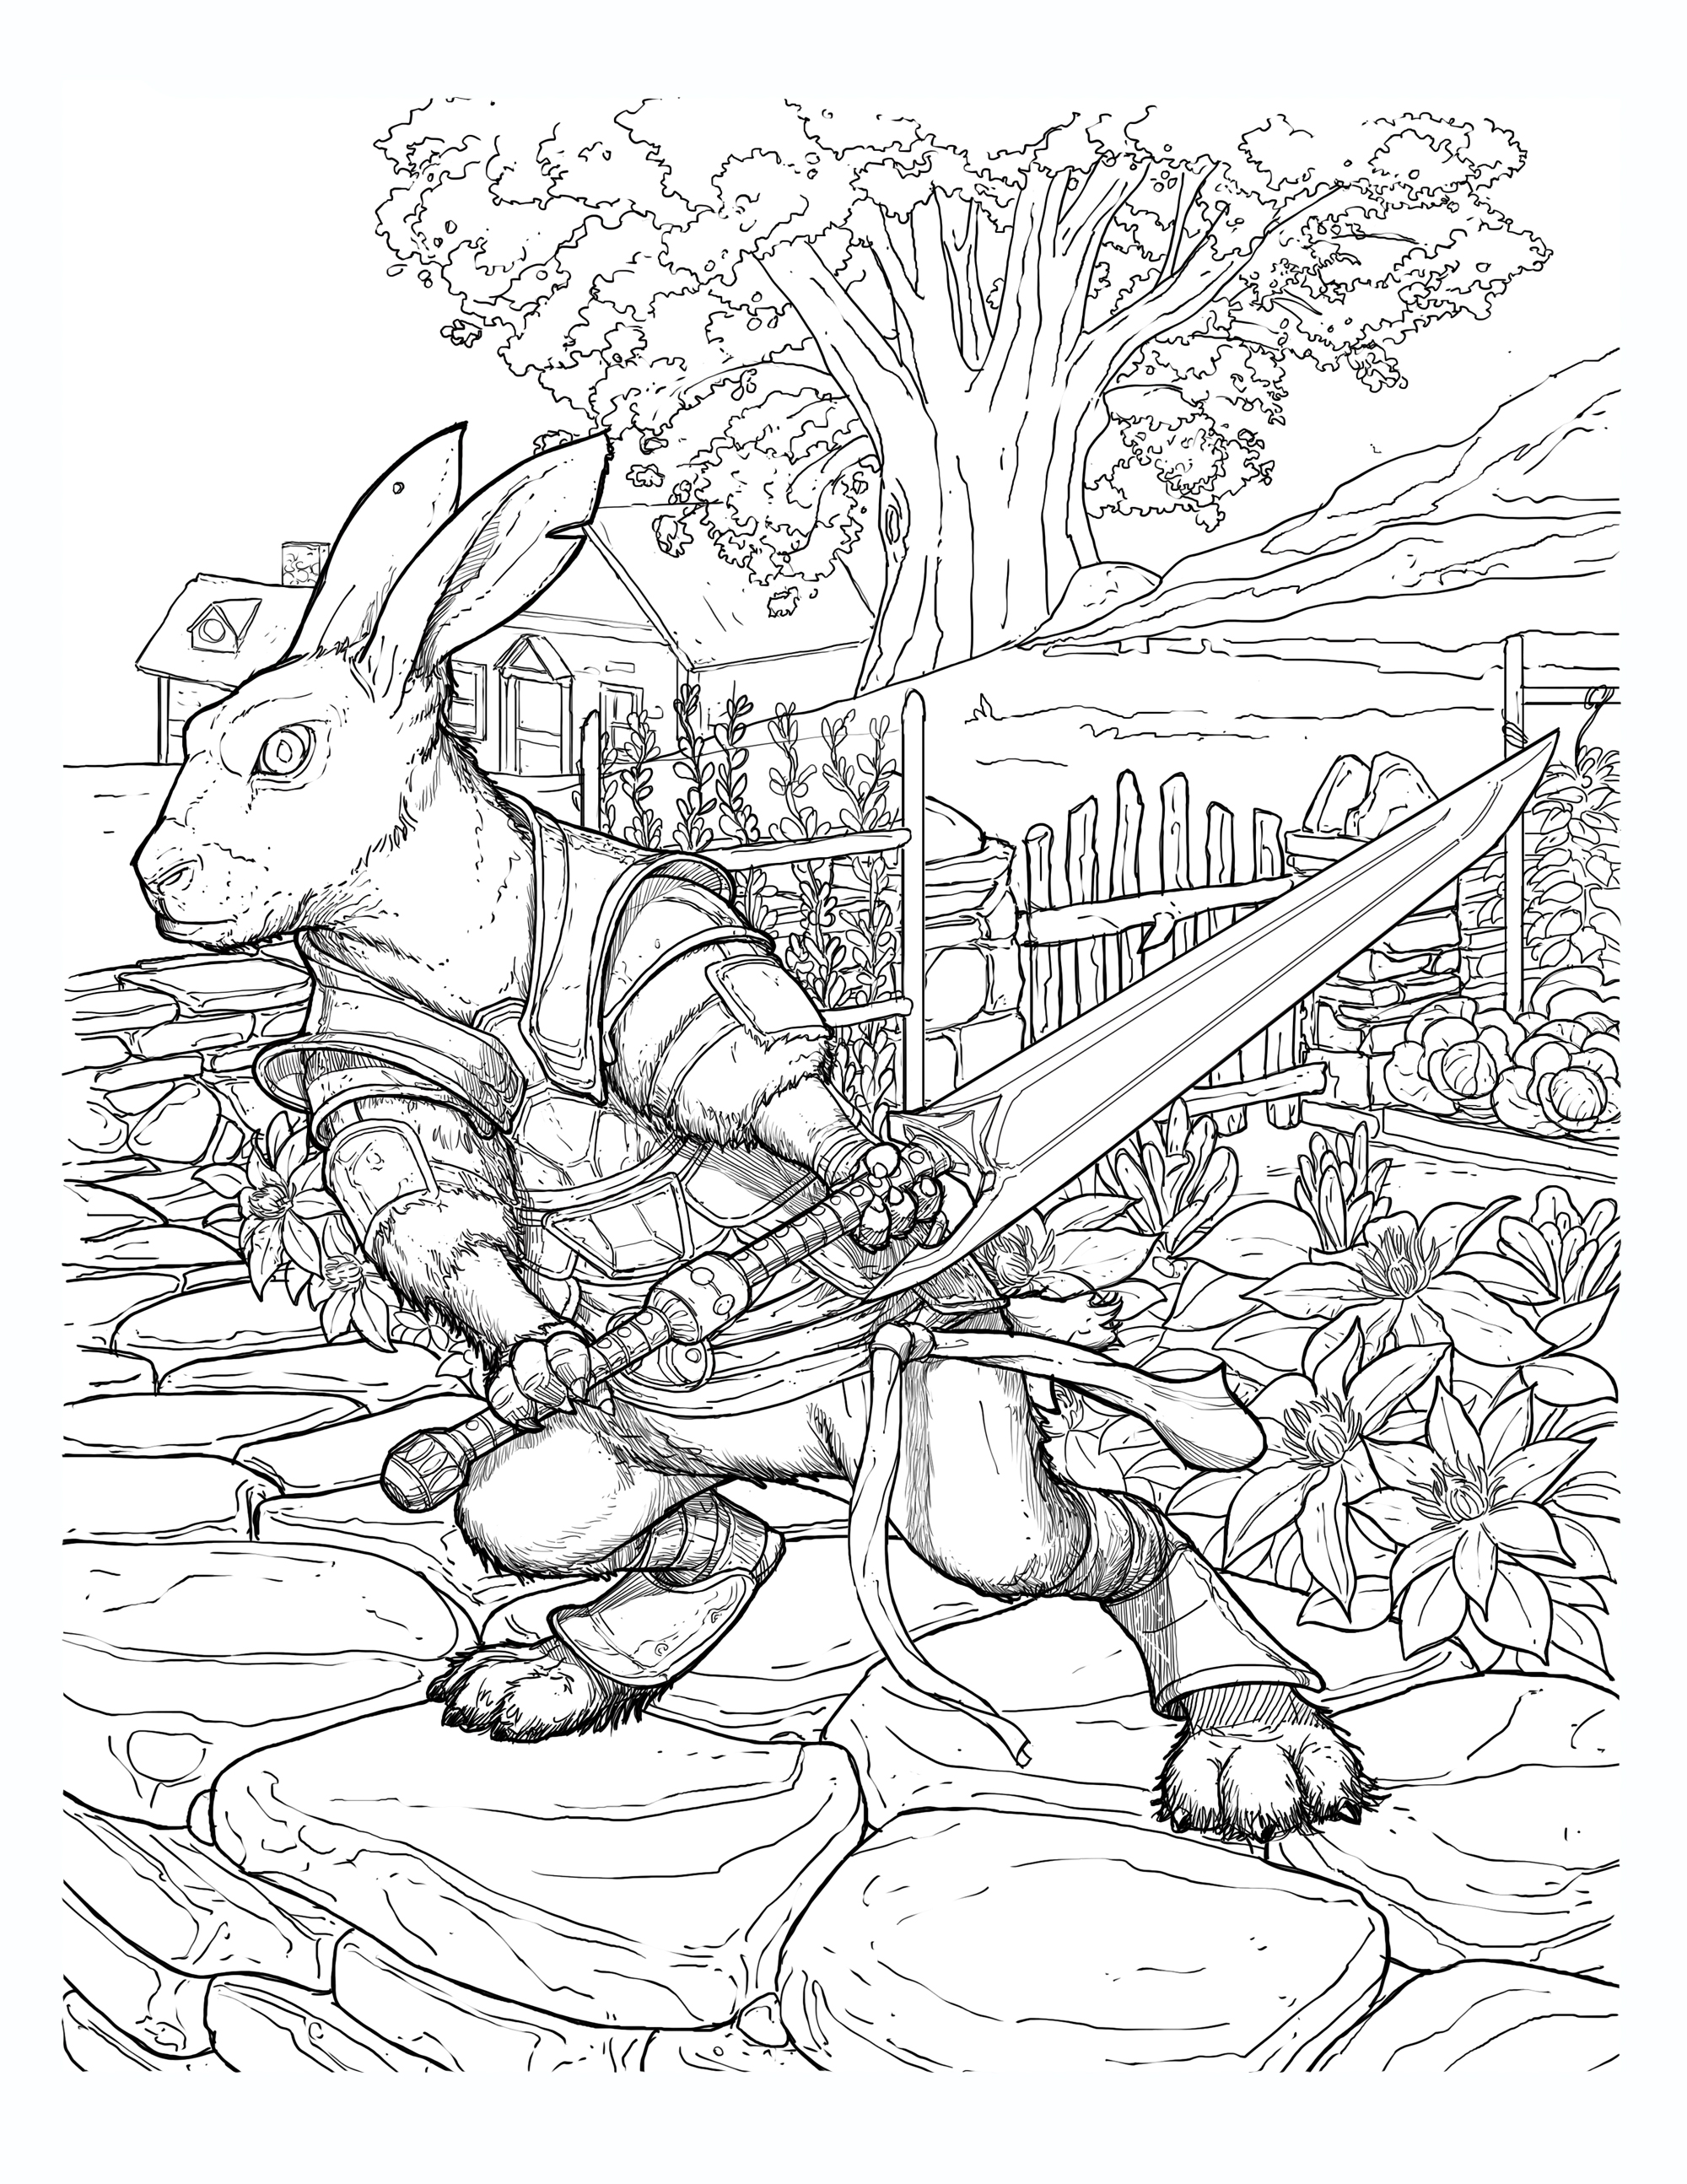 rabbit_woodlandWarriors_Small